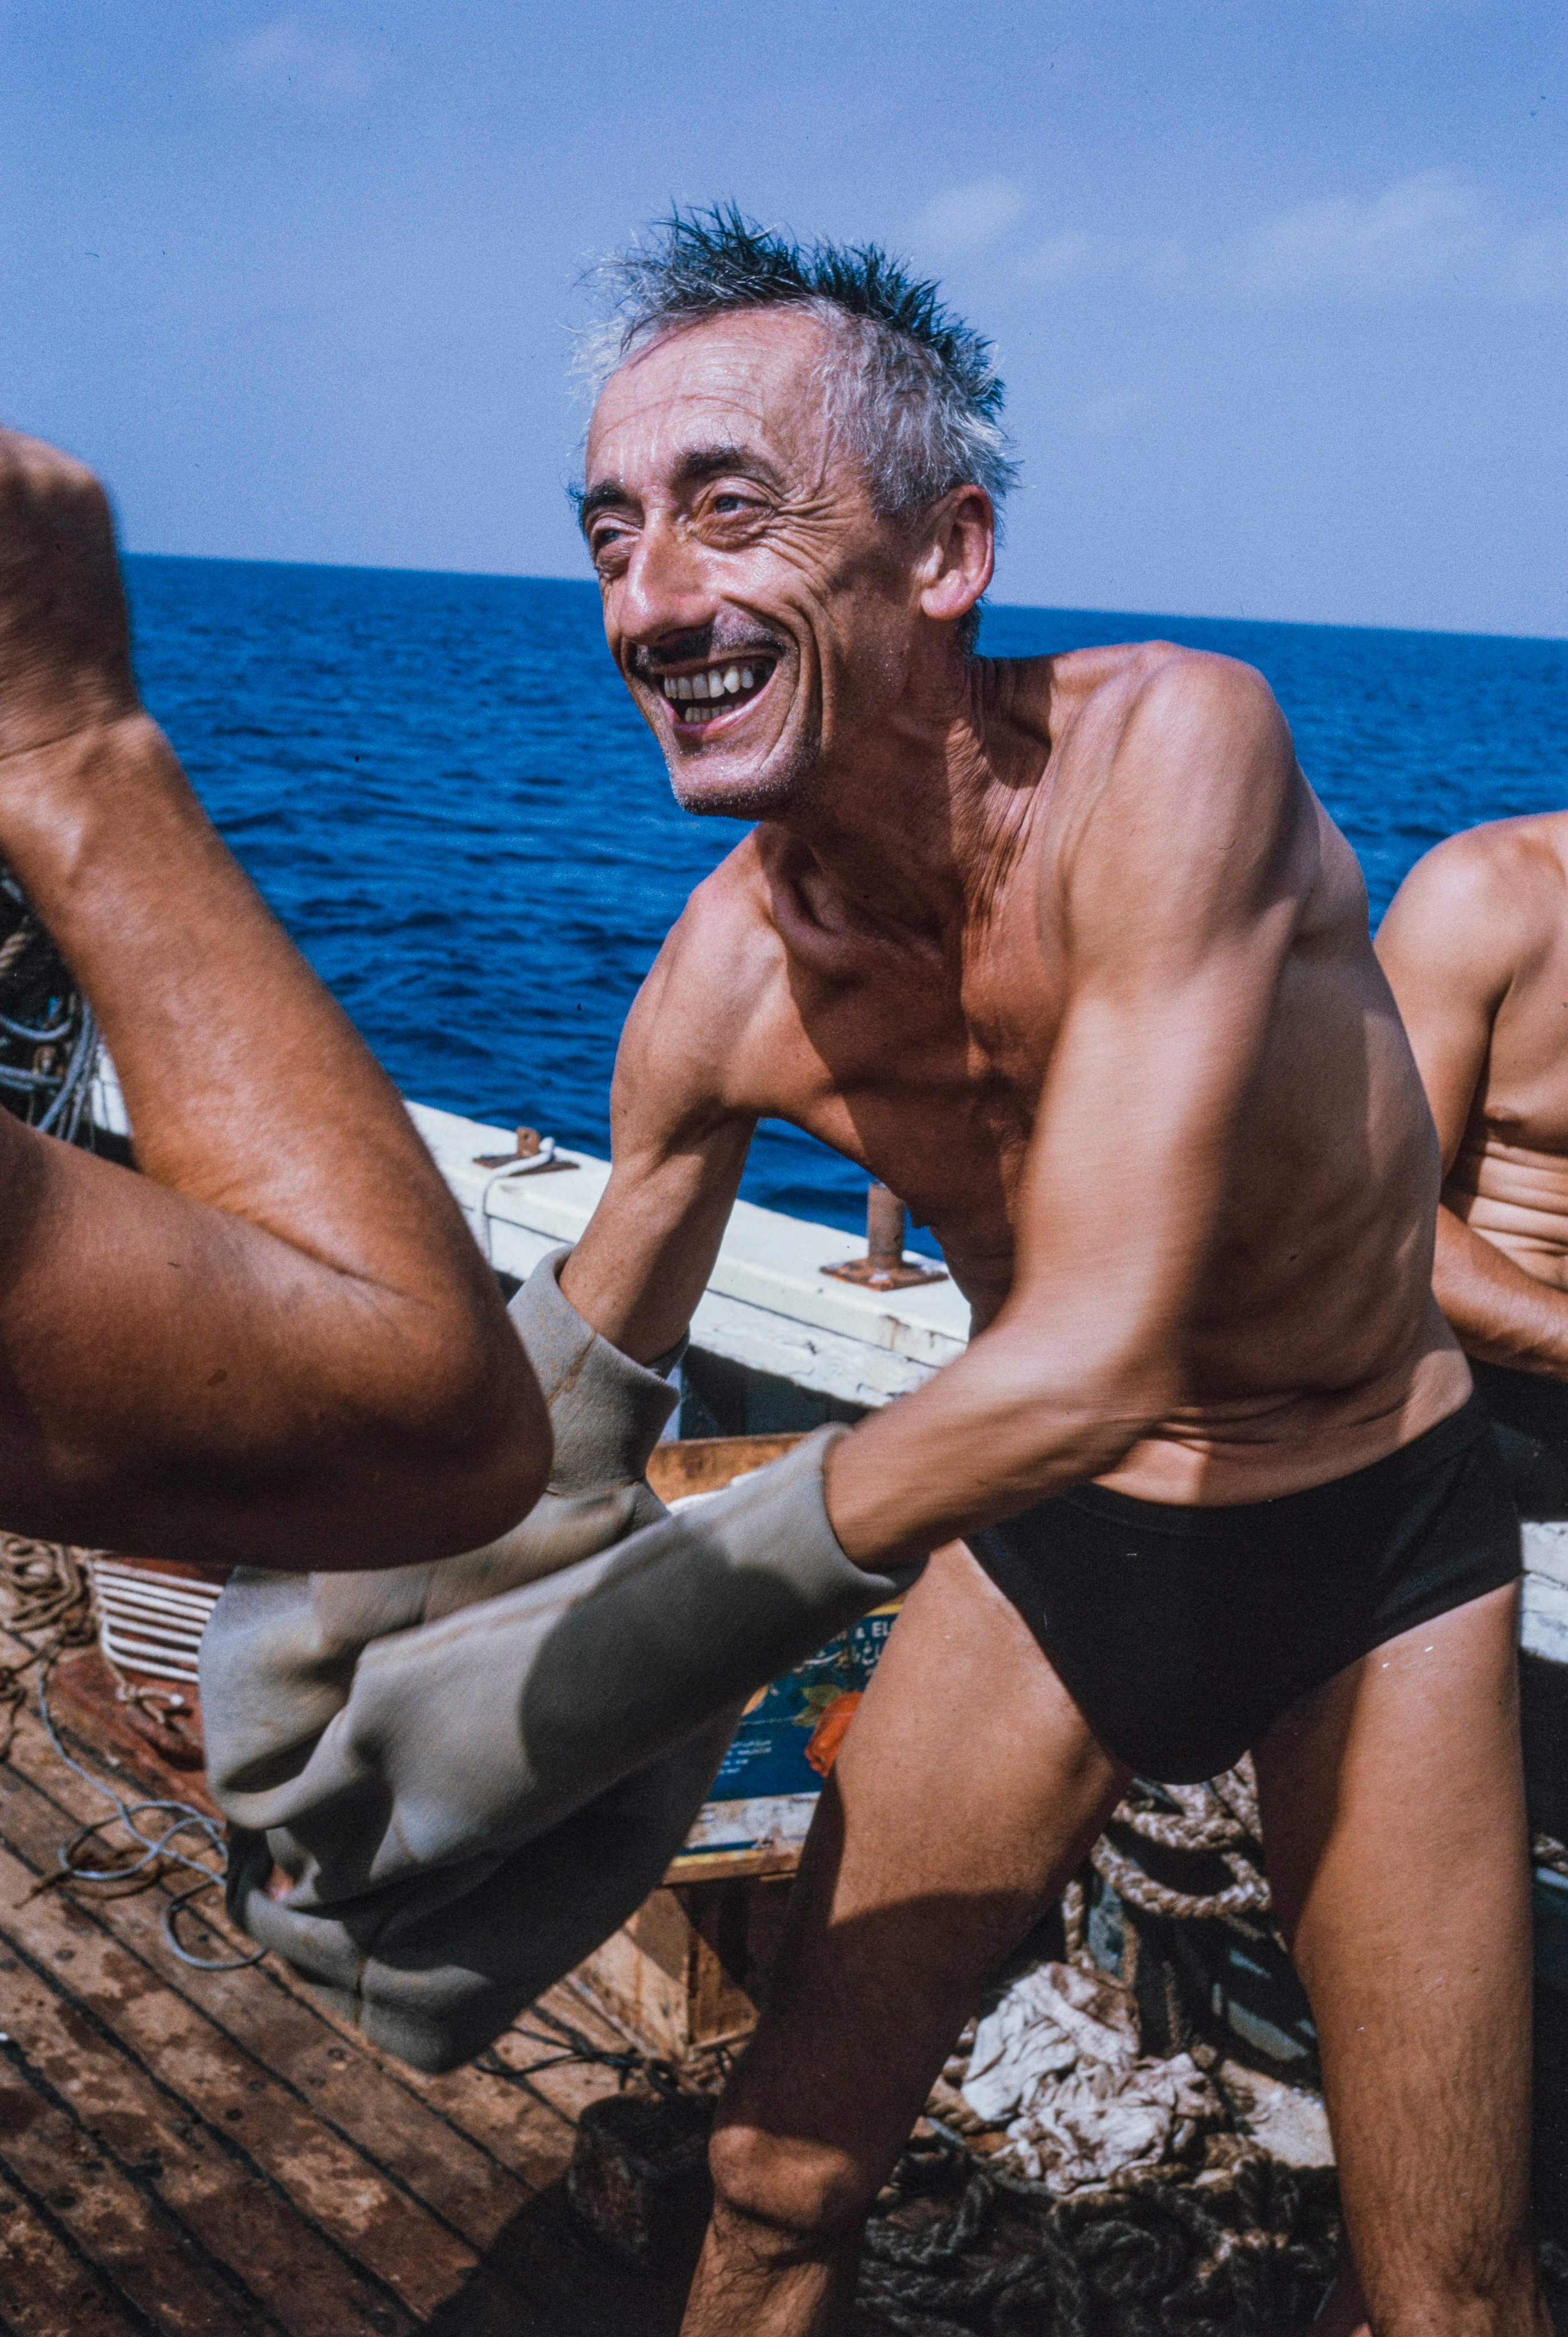 An elderly Jacques Cousteau smiles broadly as he peels off a wetsuit on board a boat at sea, with two other crew members just out of frame.